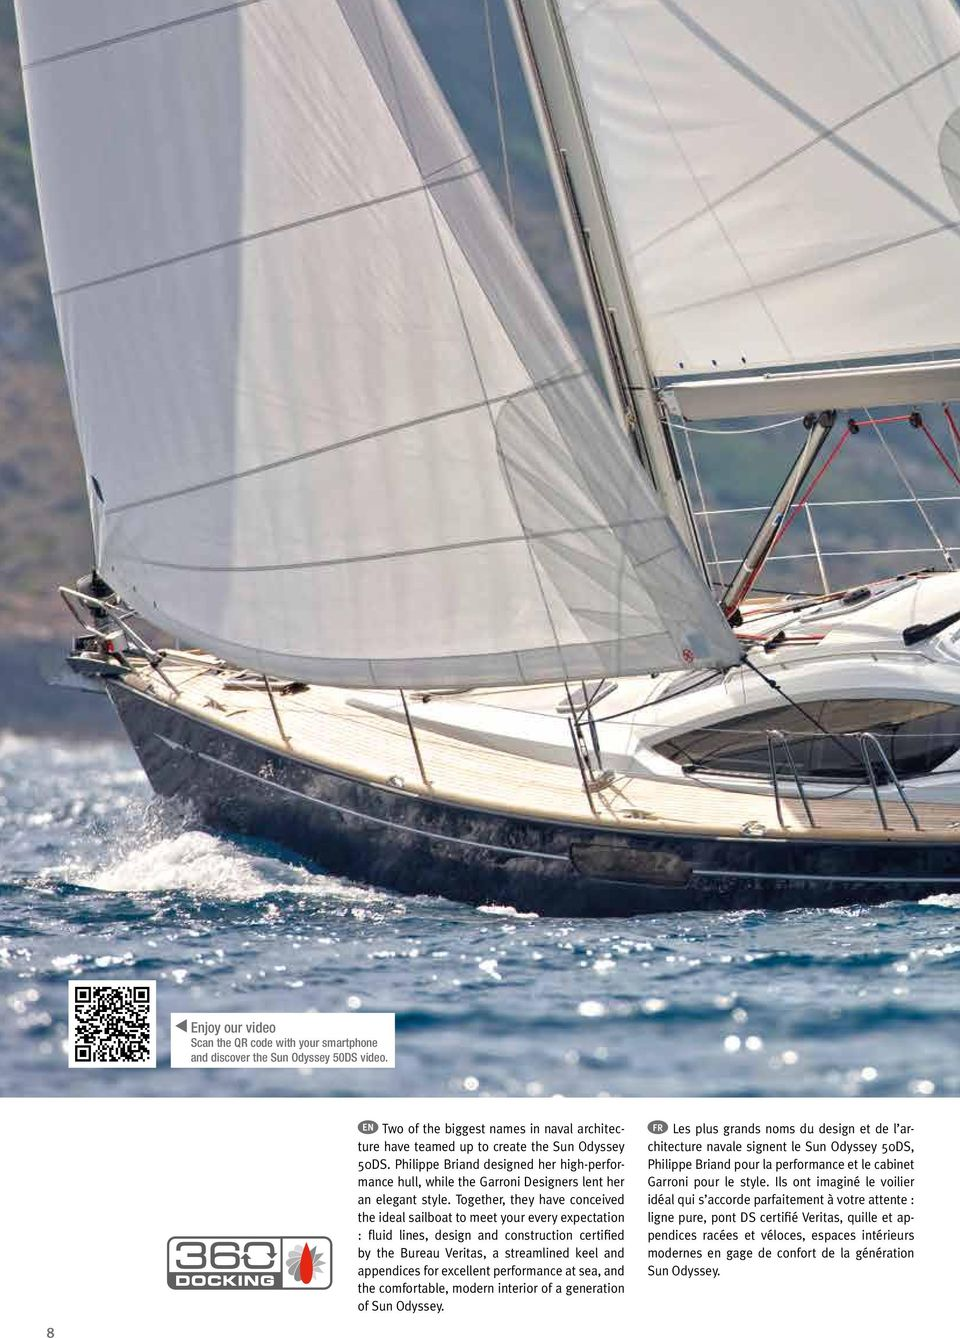 Together, they have conceived the ideal sailboat to meet your every expectation : fluid lines, design and construction certified by the Bureau Veritas, a streamlined keel and appendices for excellent